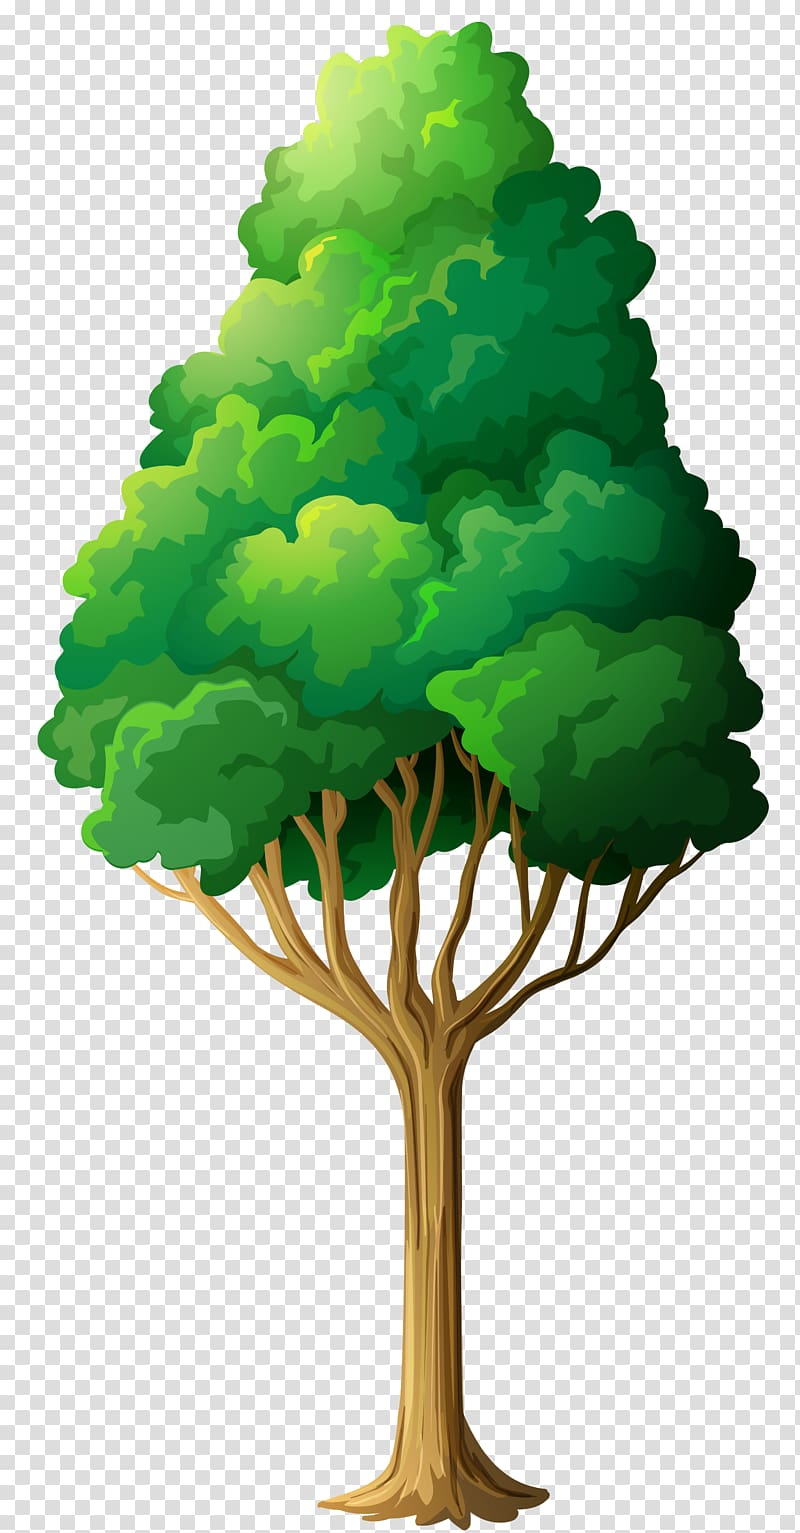 Green Tree , green leafed tree illustration transparent.